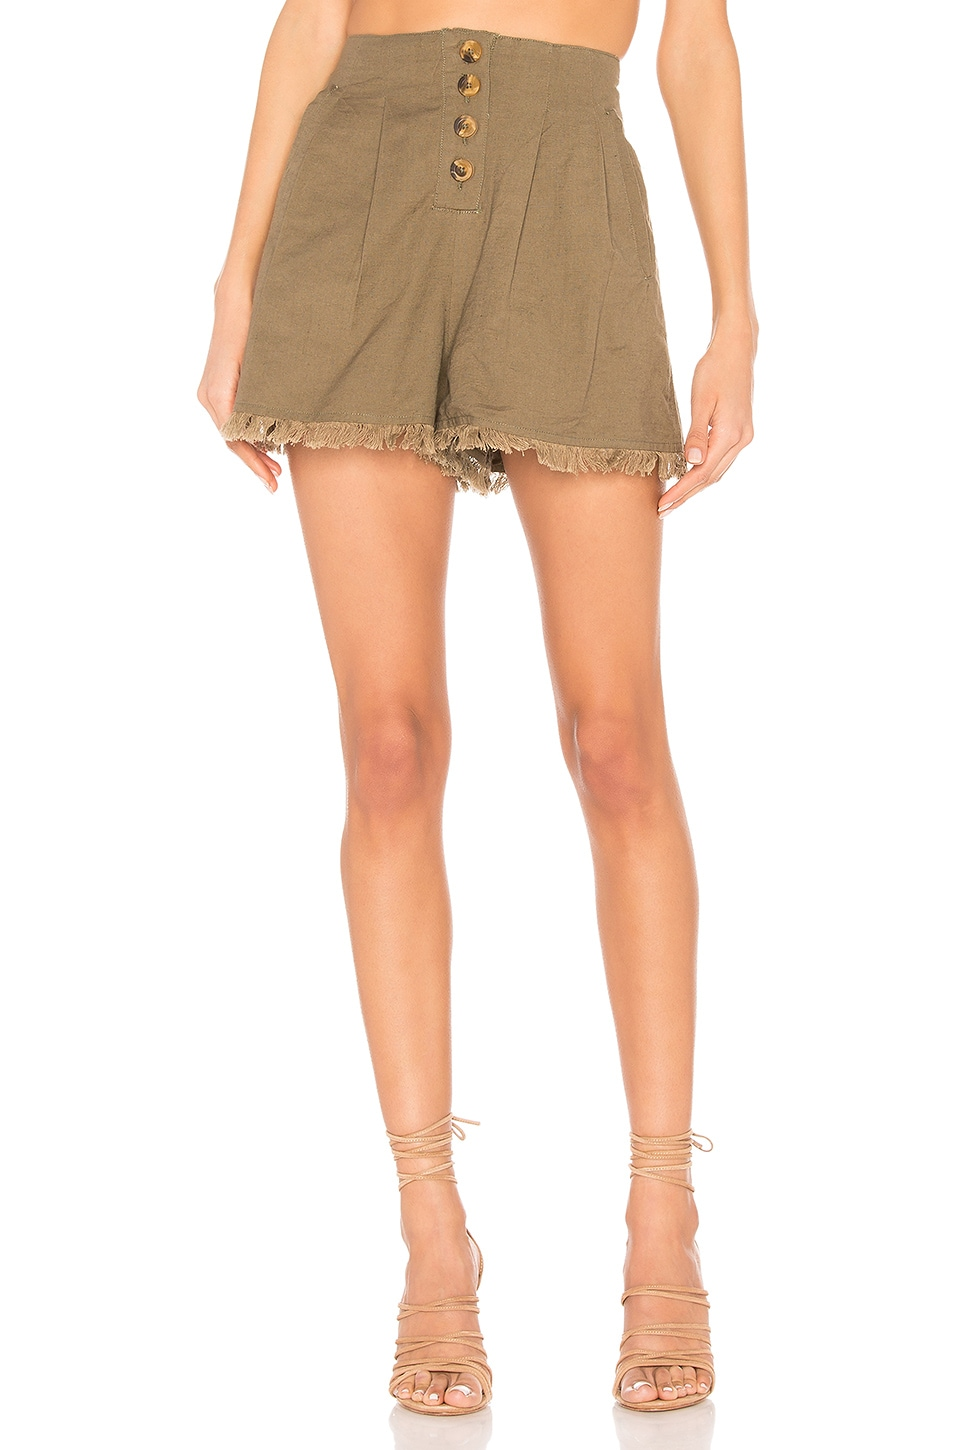 Tularosa Makayla Short in Olive Green